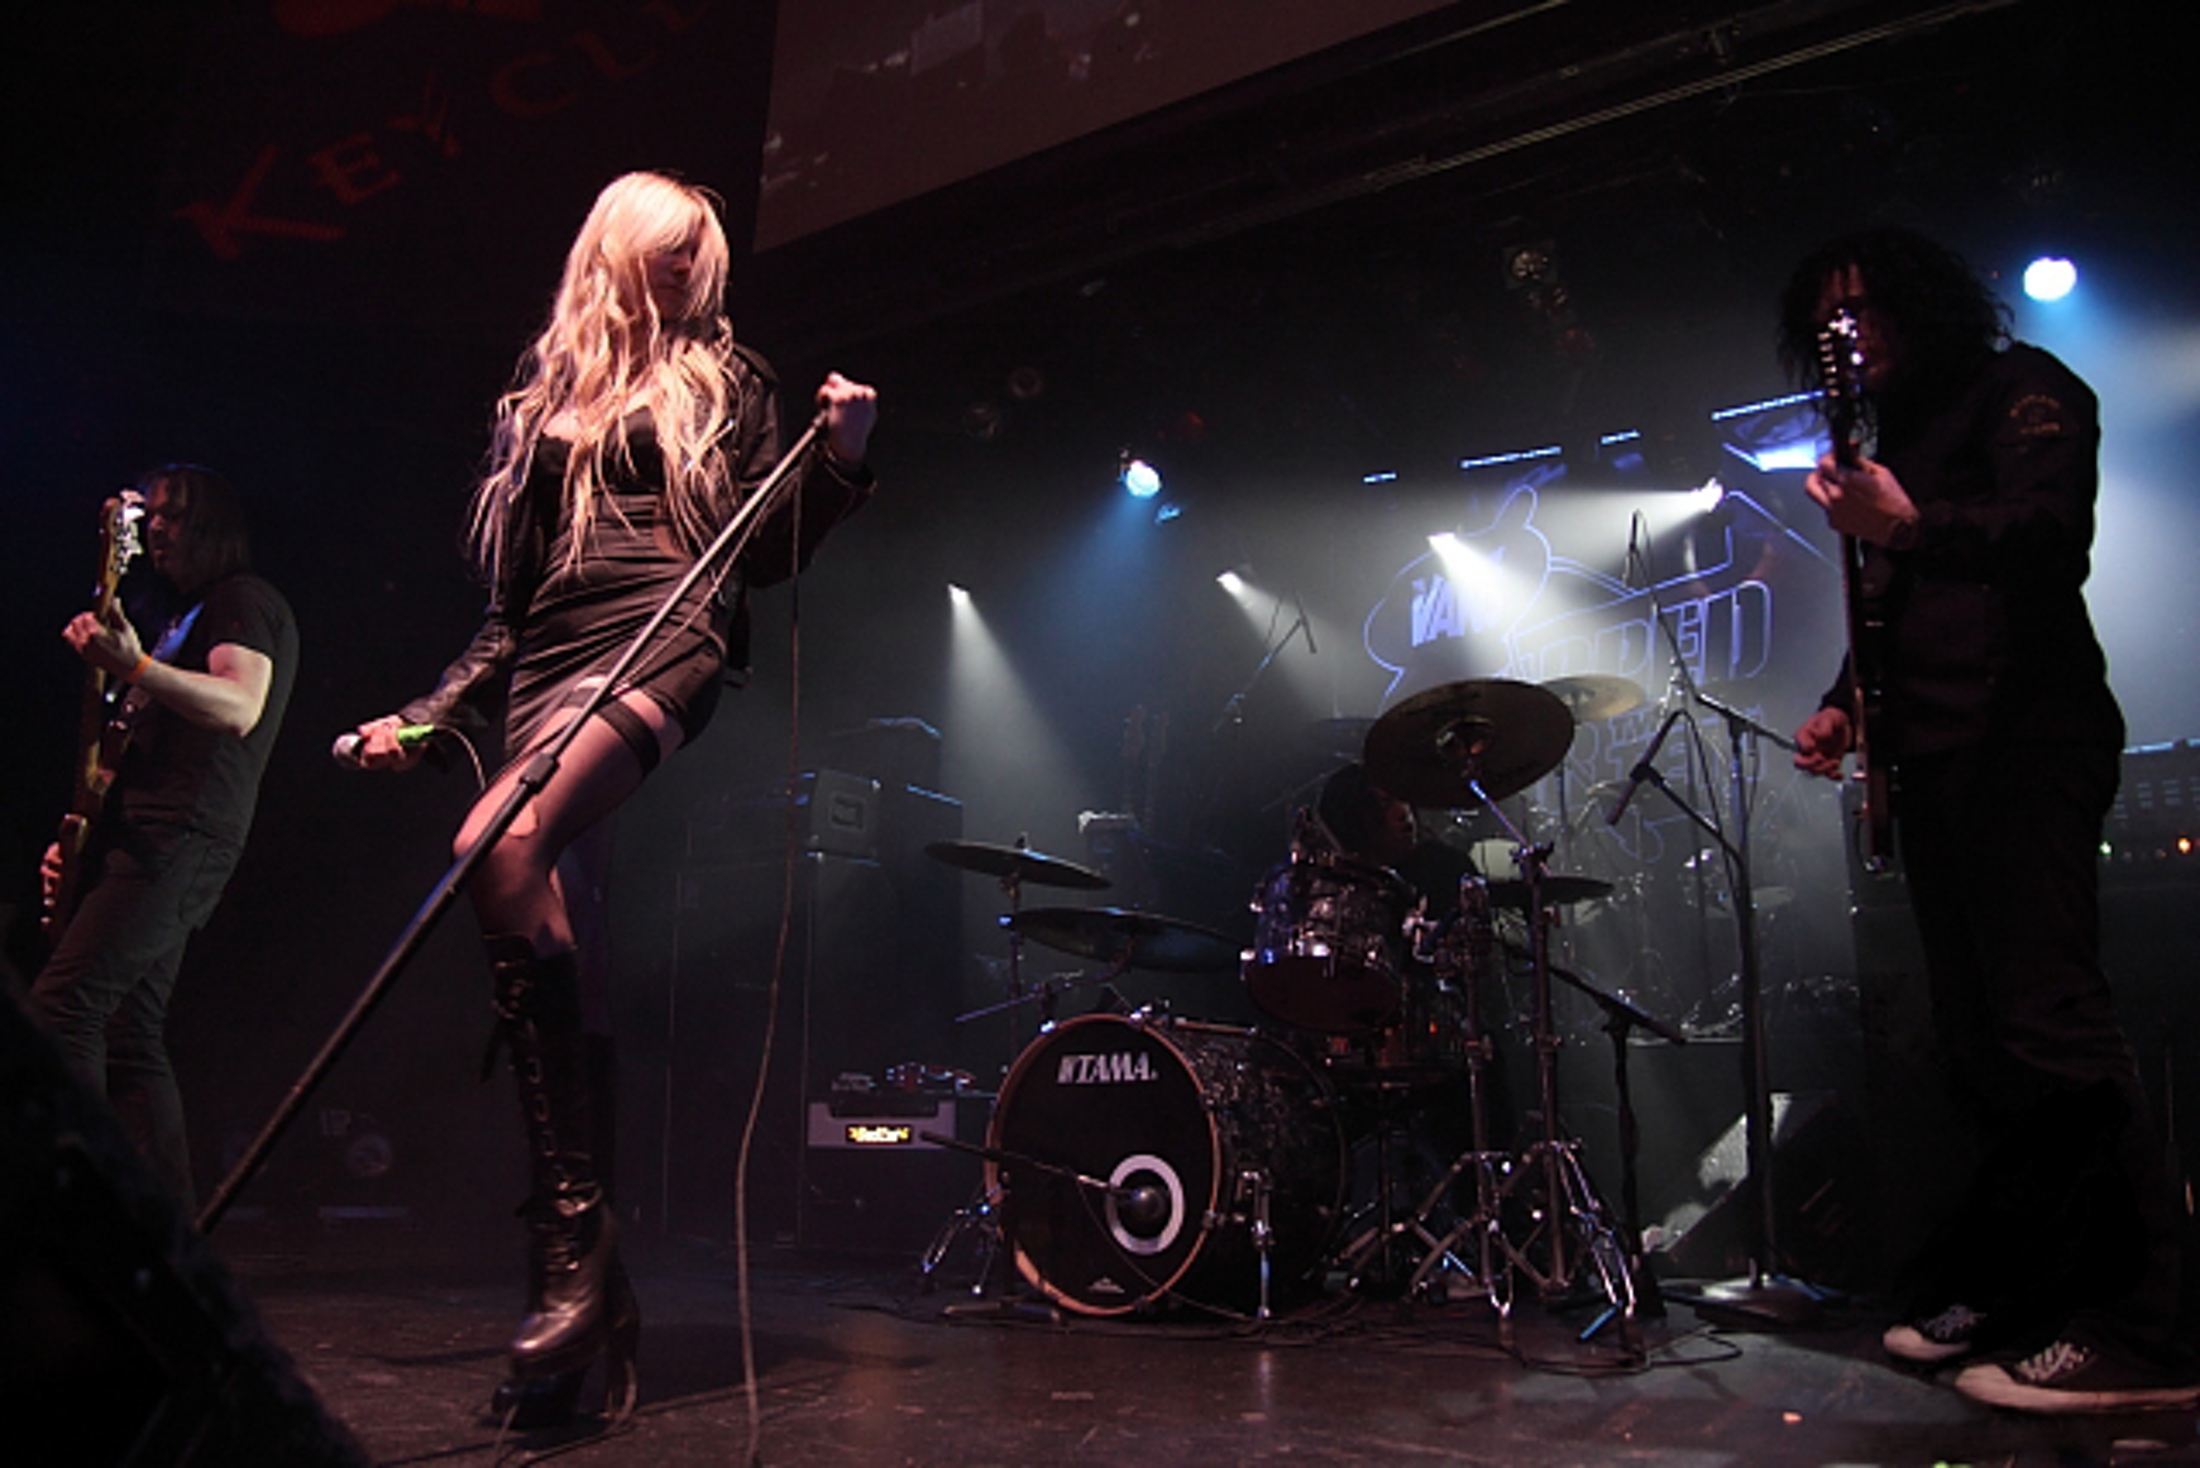 The Pretty Reckless perform at the Warped Tour Kickoff Party at the Key Club, Sunset Strip, West Hollywood, CA in 2010. (Genie Sanchez/Wikimedia, Creative Commons)